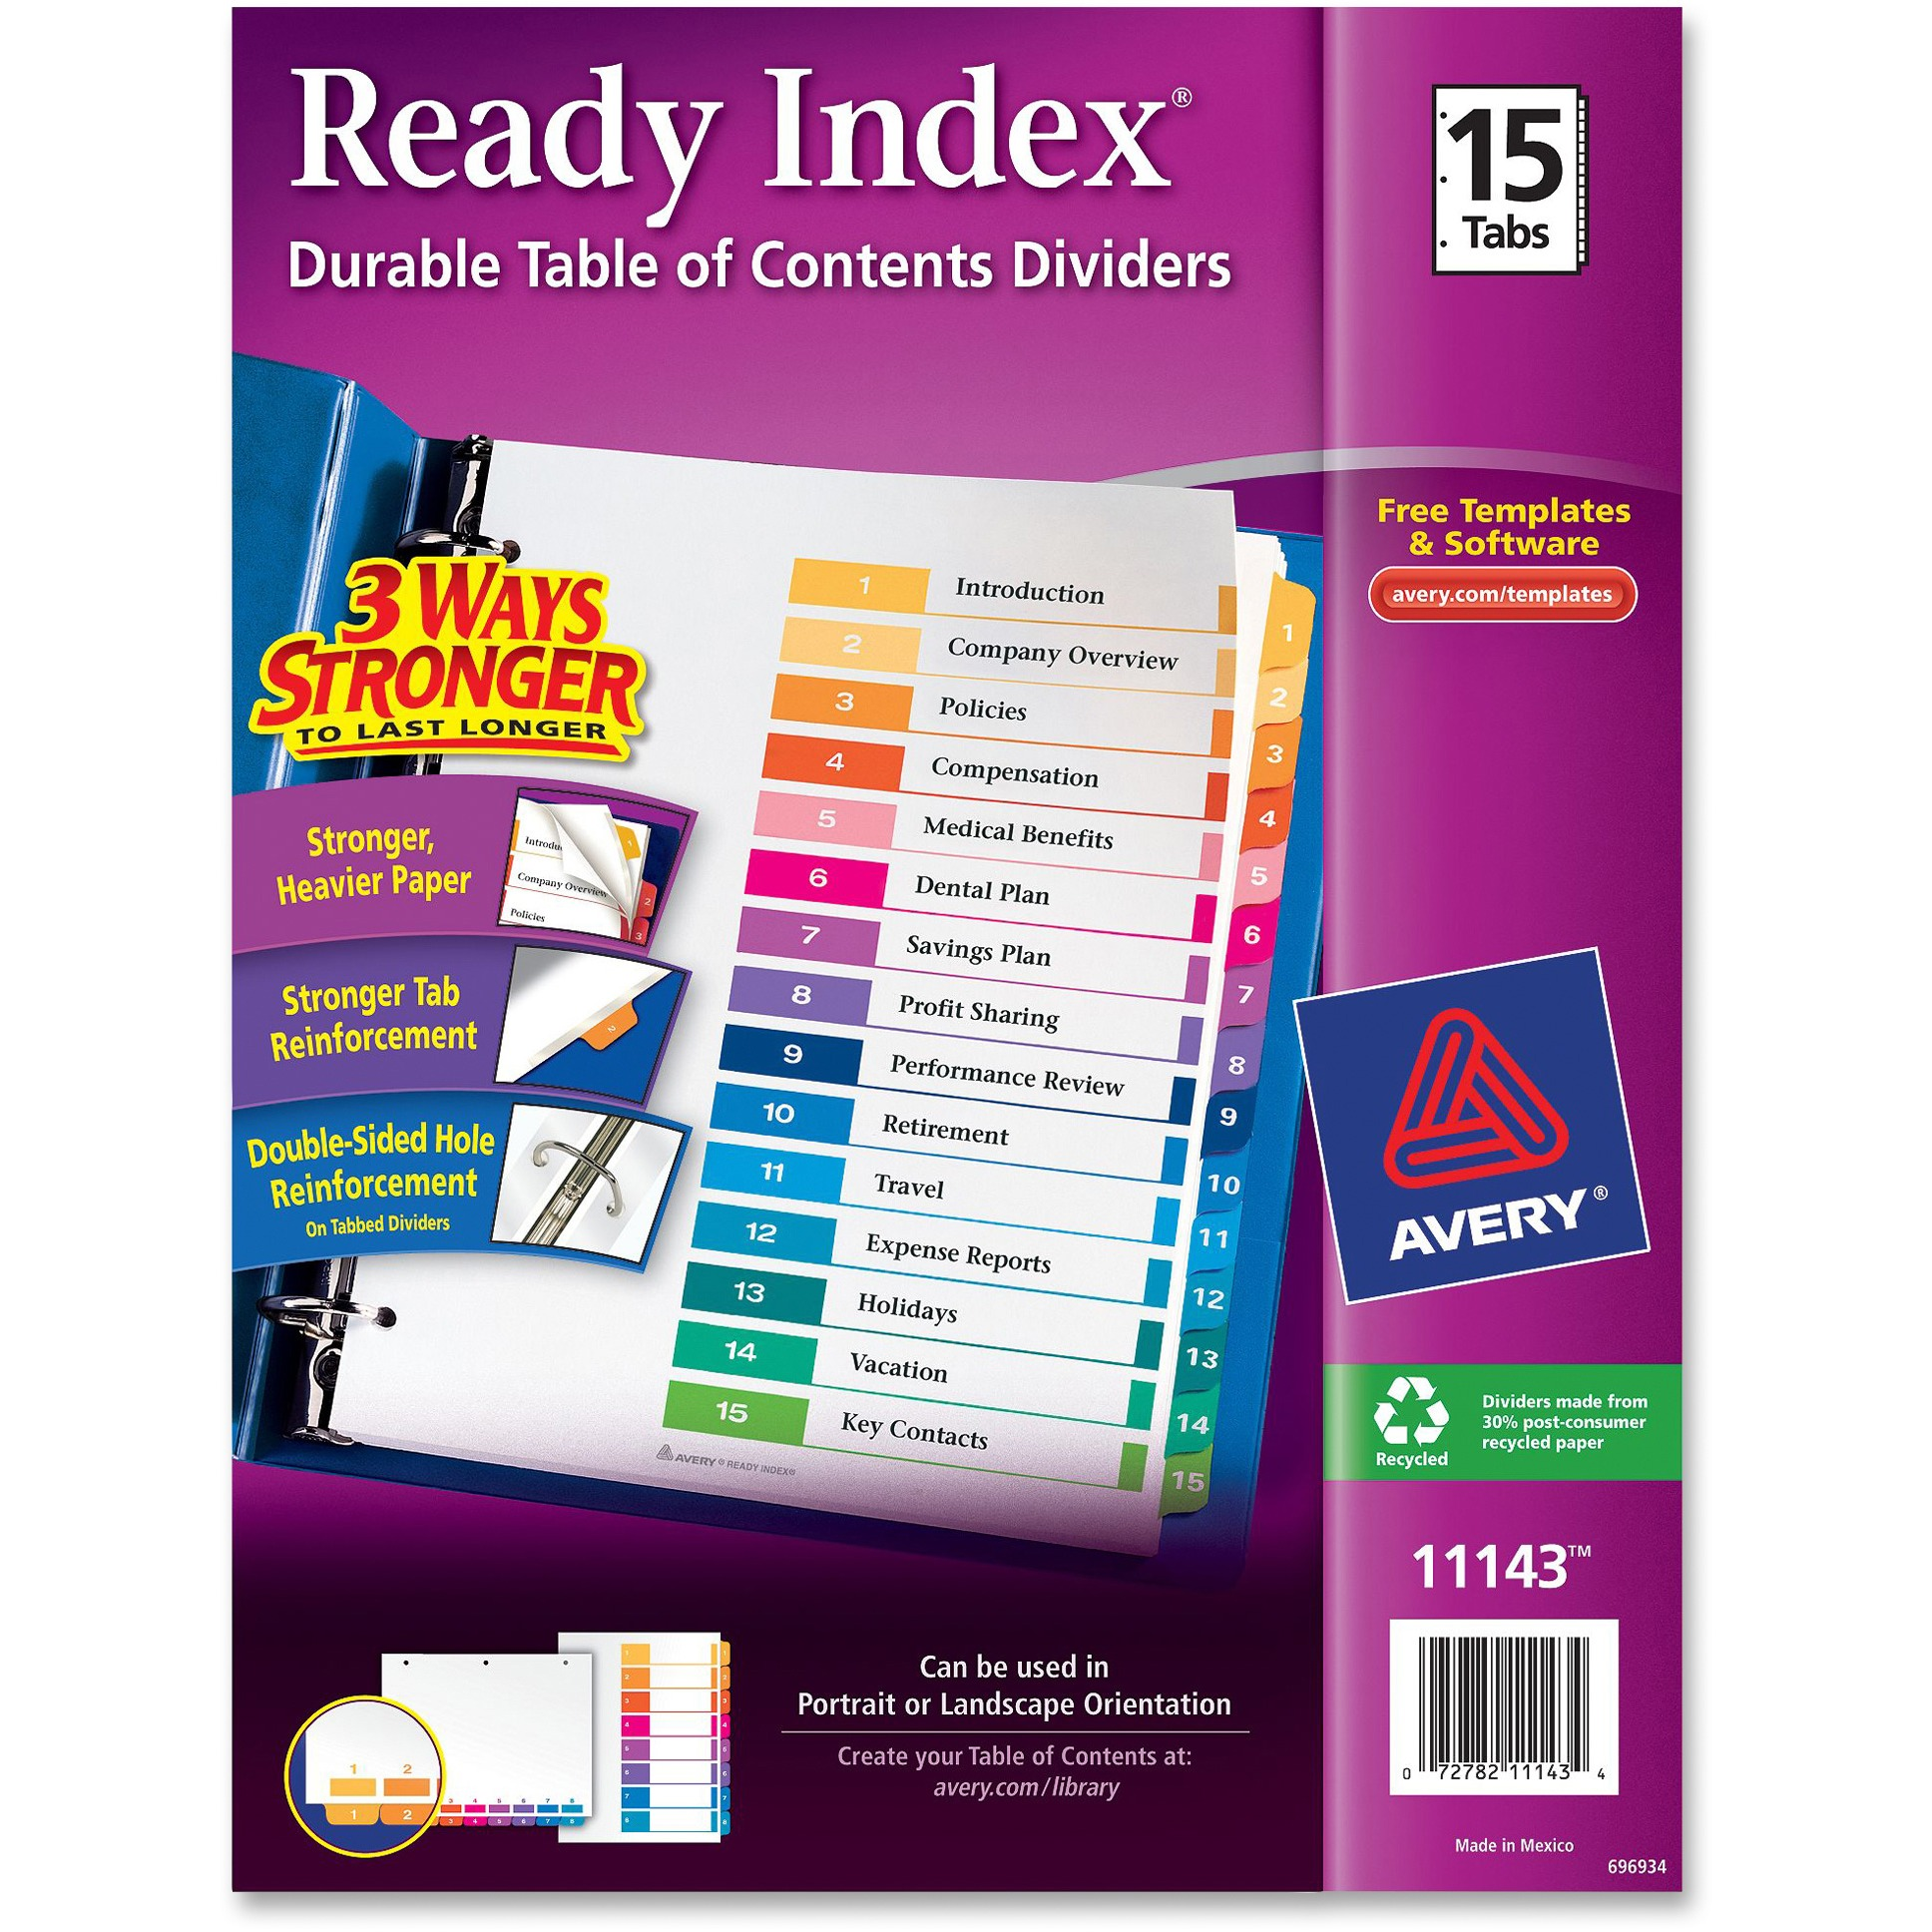 Avery Ready Index Customizable Table of Contents Dividers, Multicolor, 15 Count